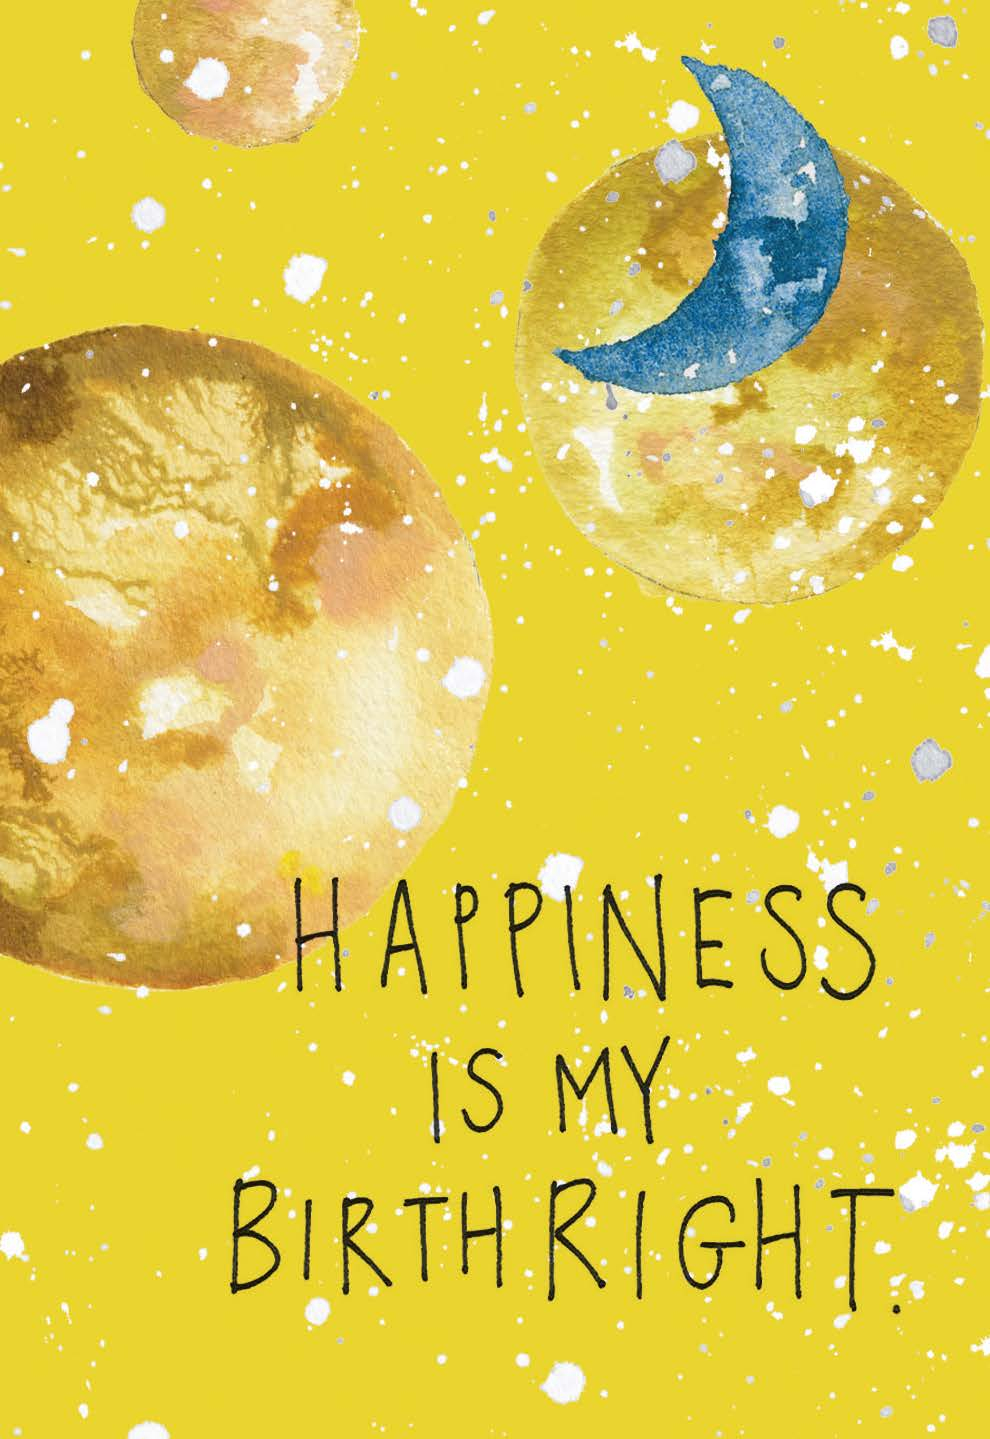 Happiness is my birthright | Gabby Bernstein | The Universe Has Your Back card deck